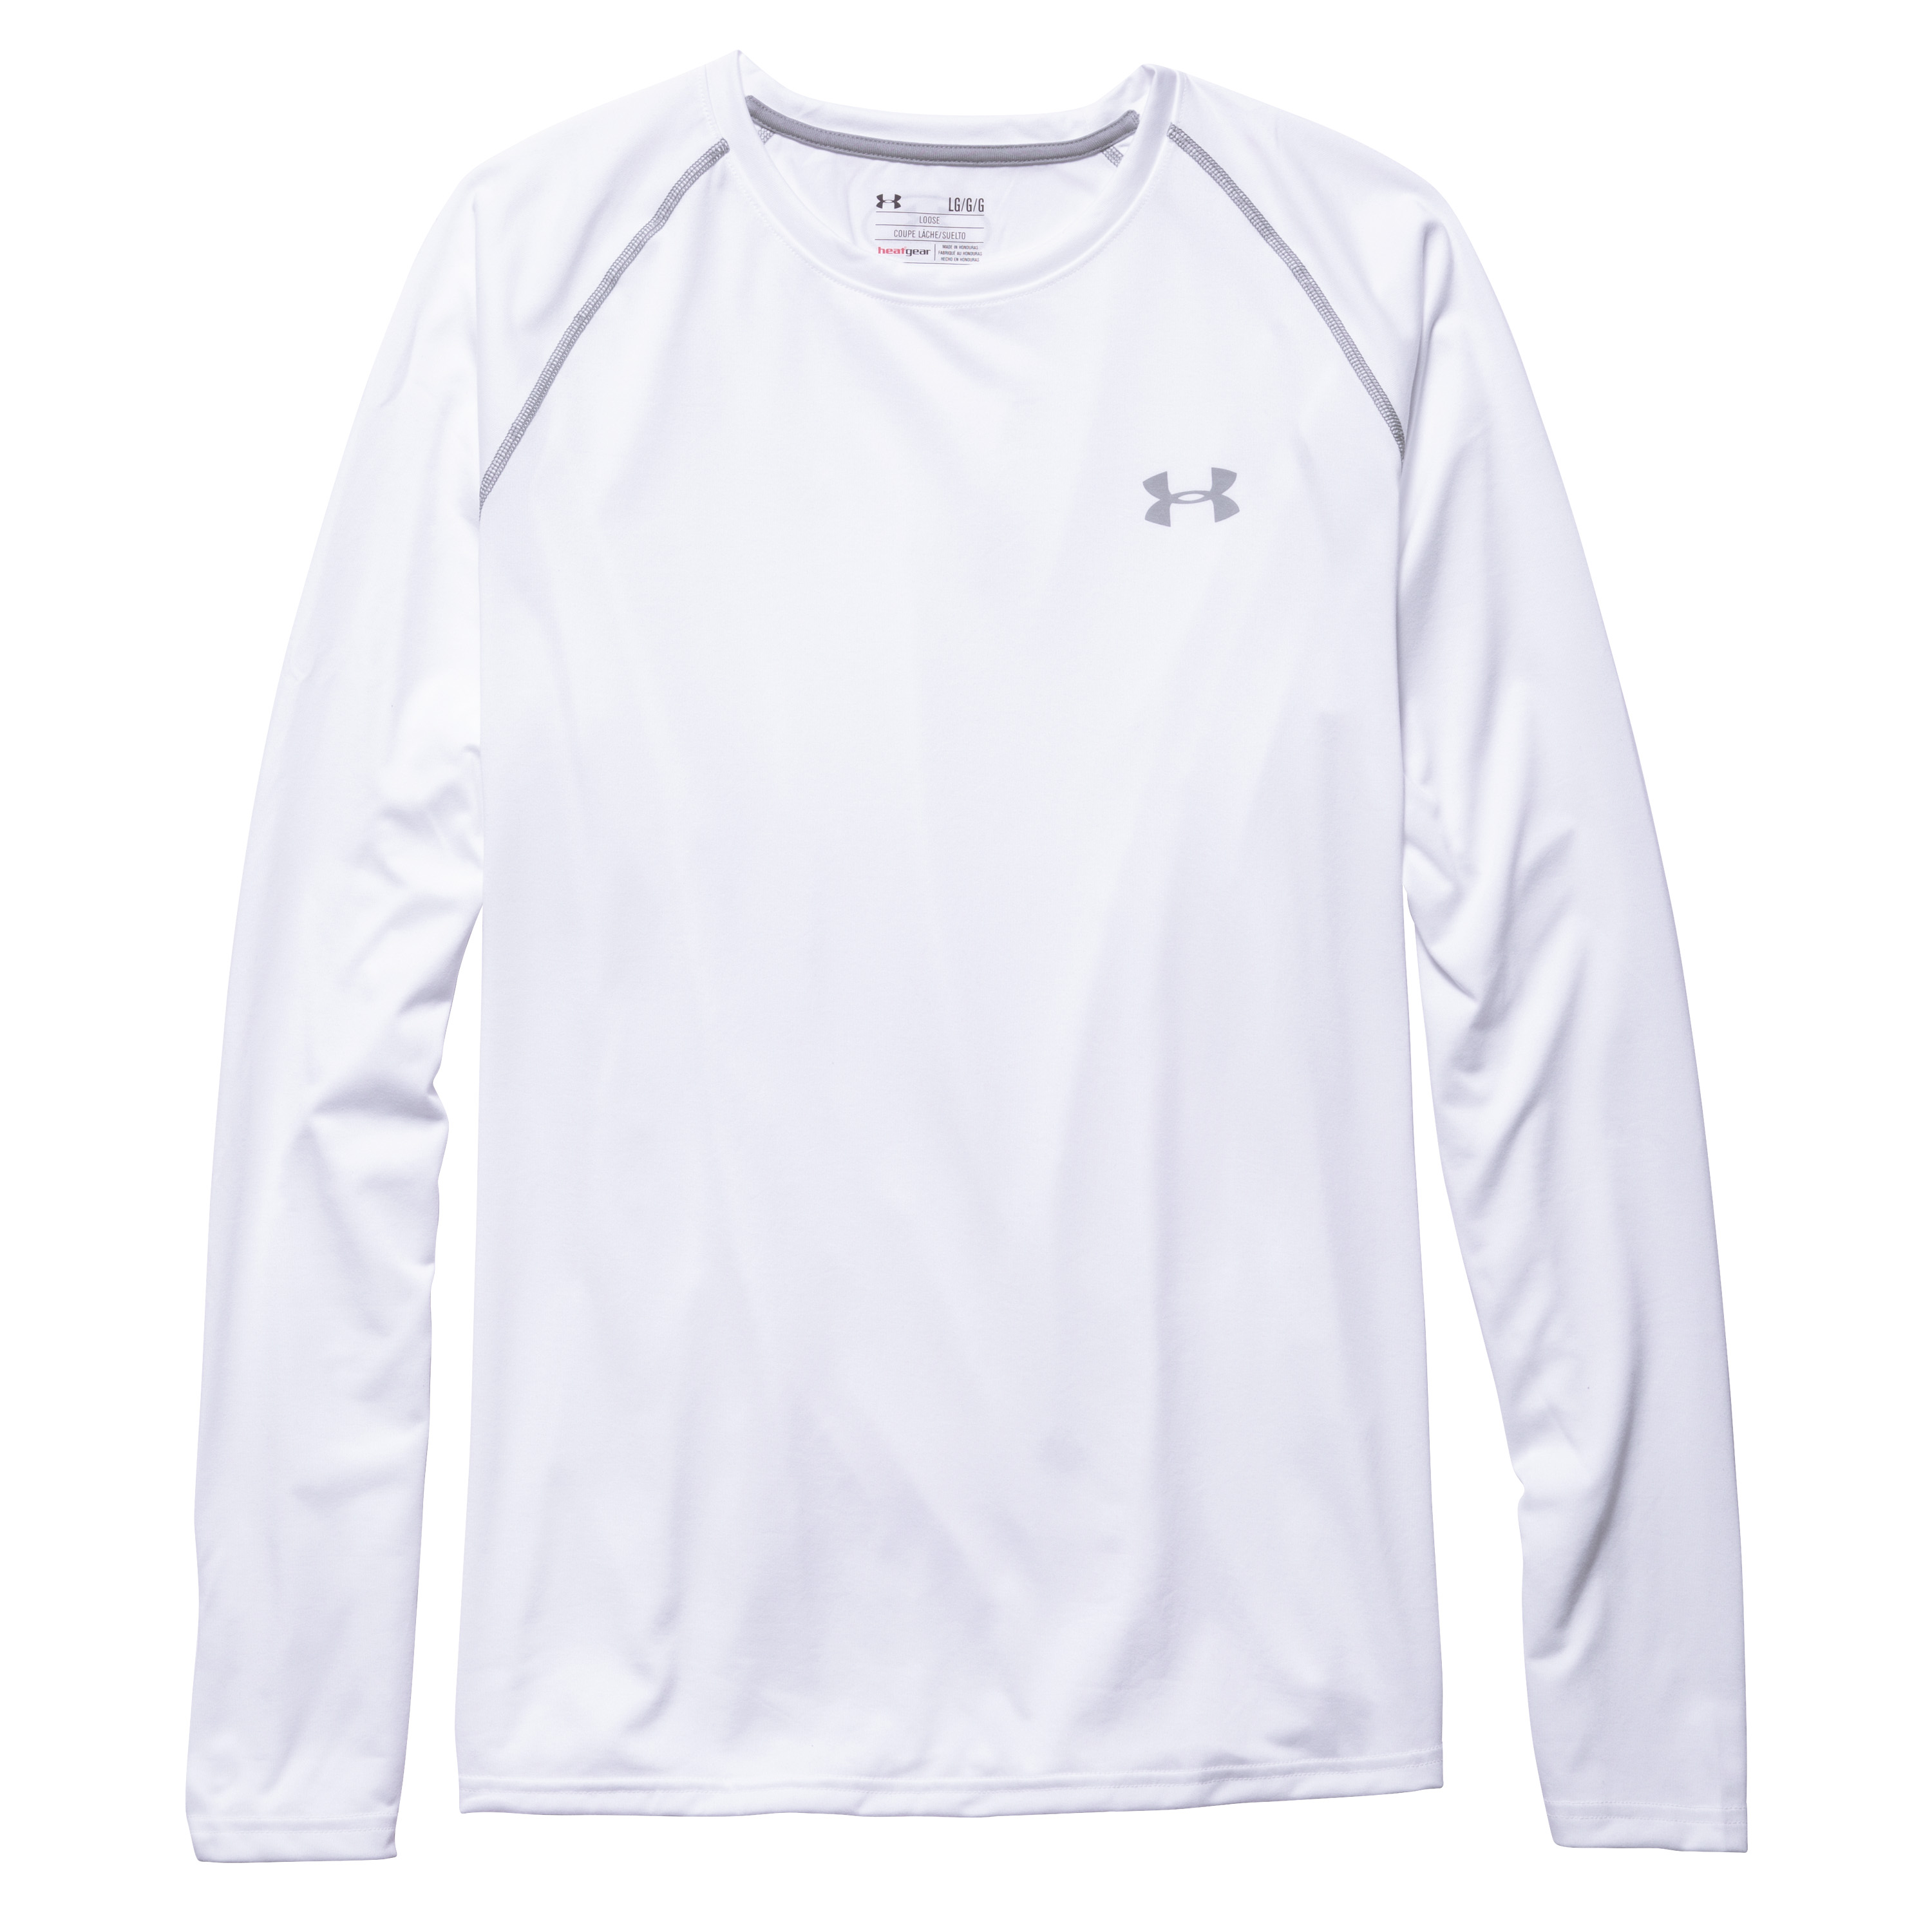 Under Armour Long Arm Shirt I Will Tech Tee white